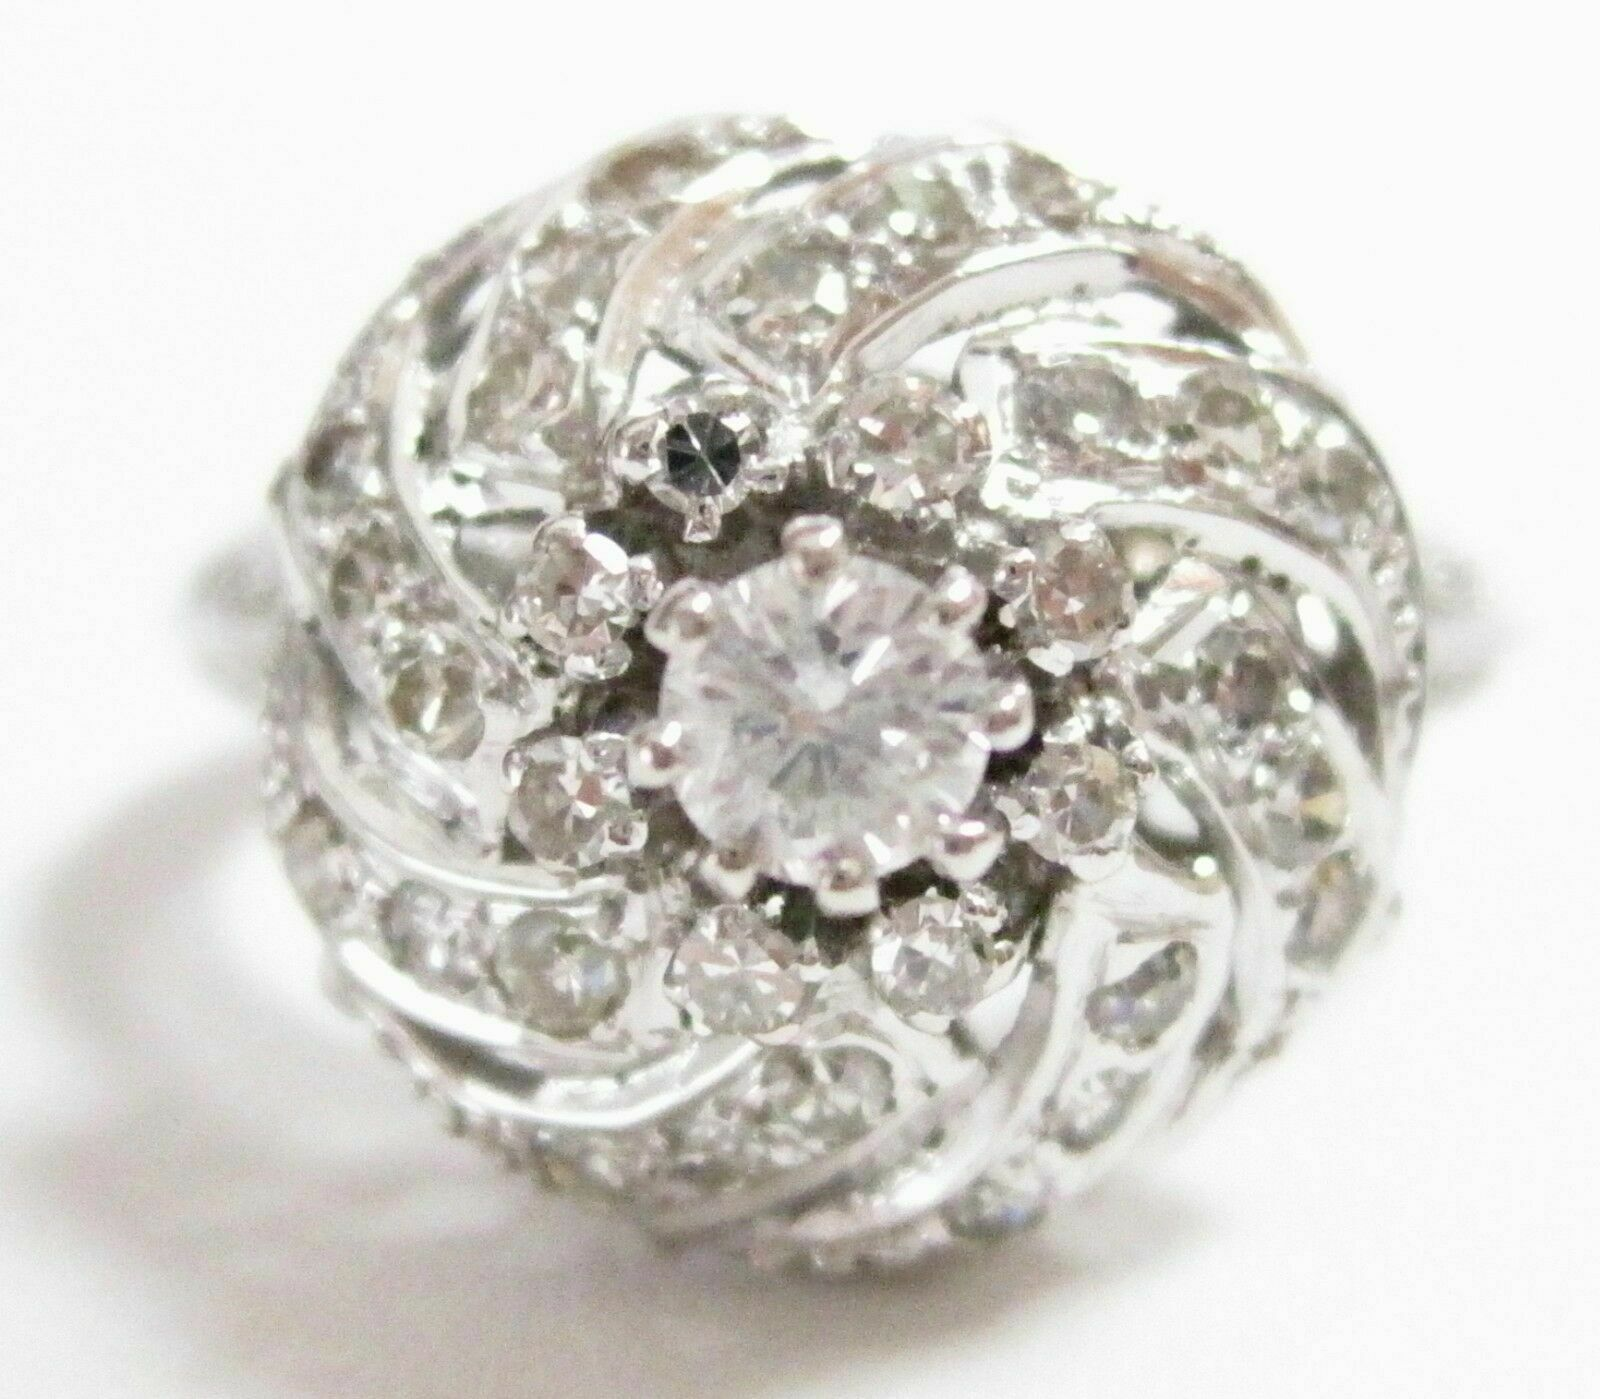 FINE Round Diamond Ring Antique Inspired 14kt White Gold